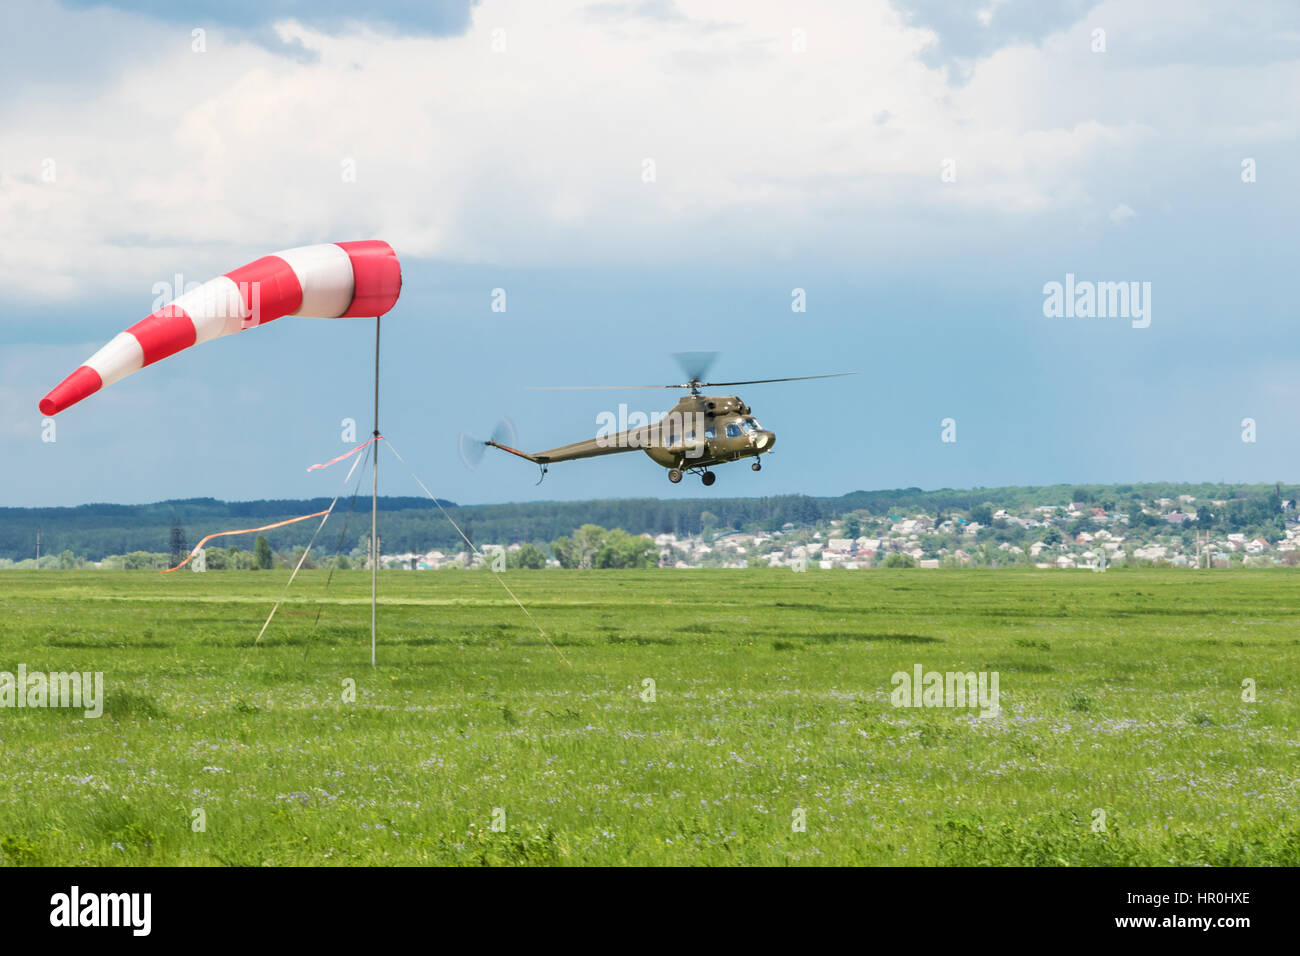 Green military helicopter flies near the ground next to a weather vane against the background of the city - Stock Image